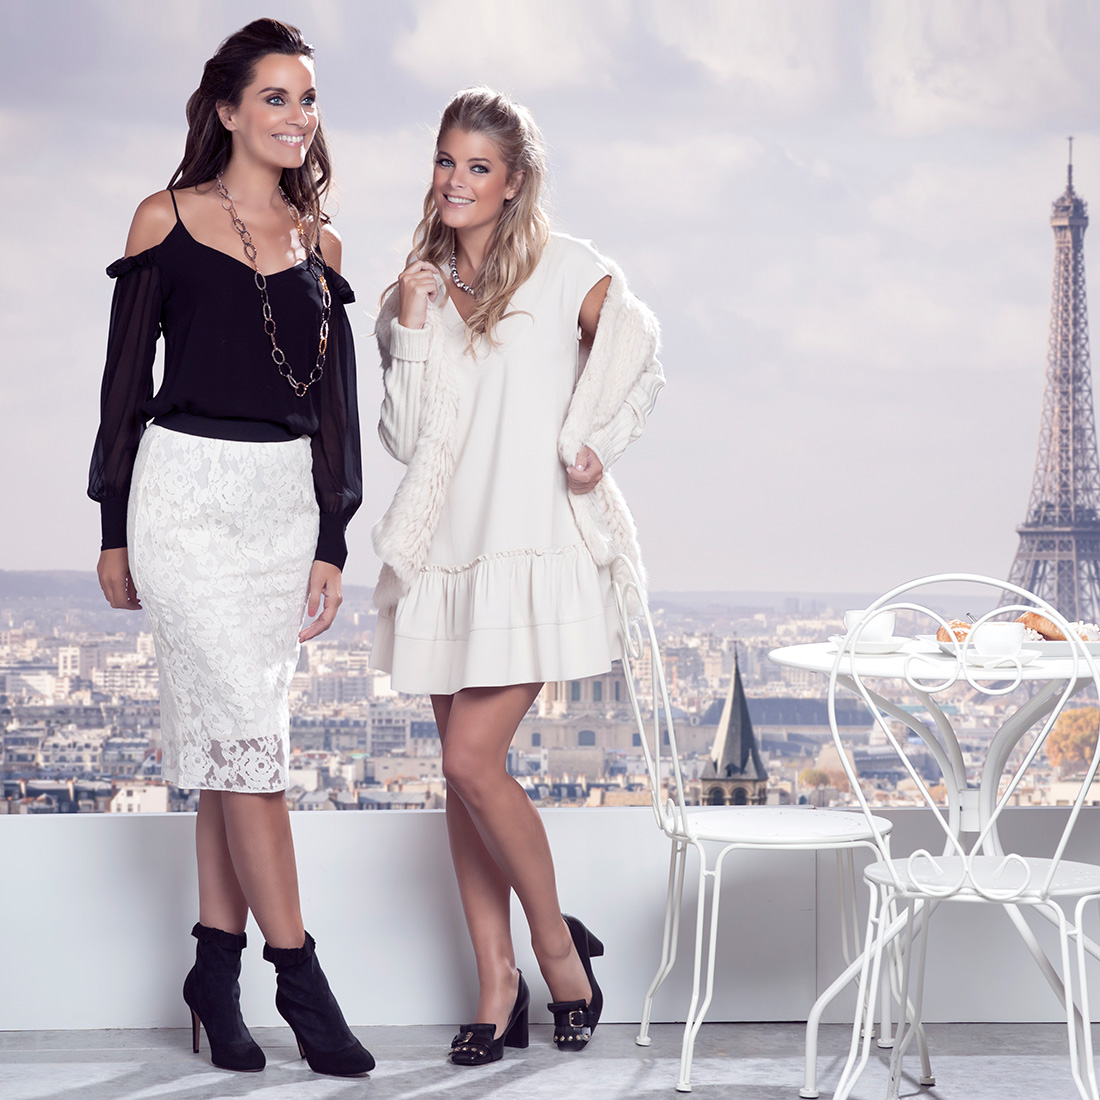 twinset, ecru, black, girly, paris